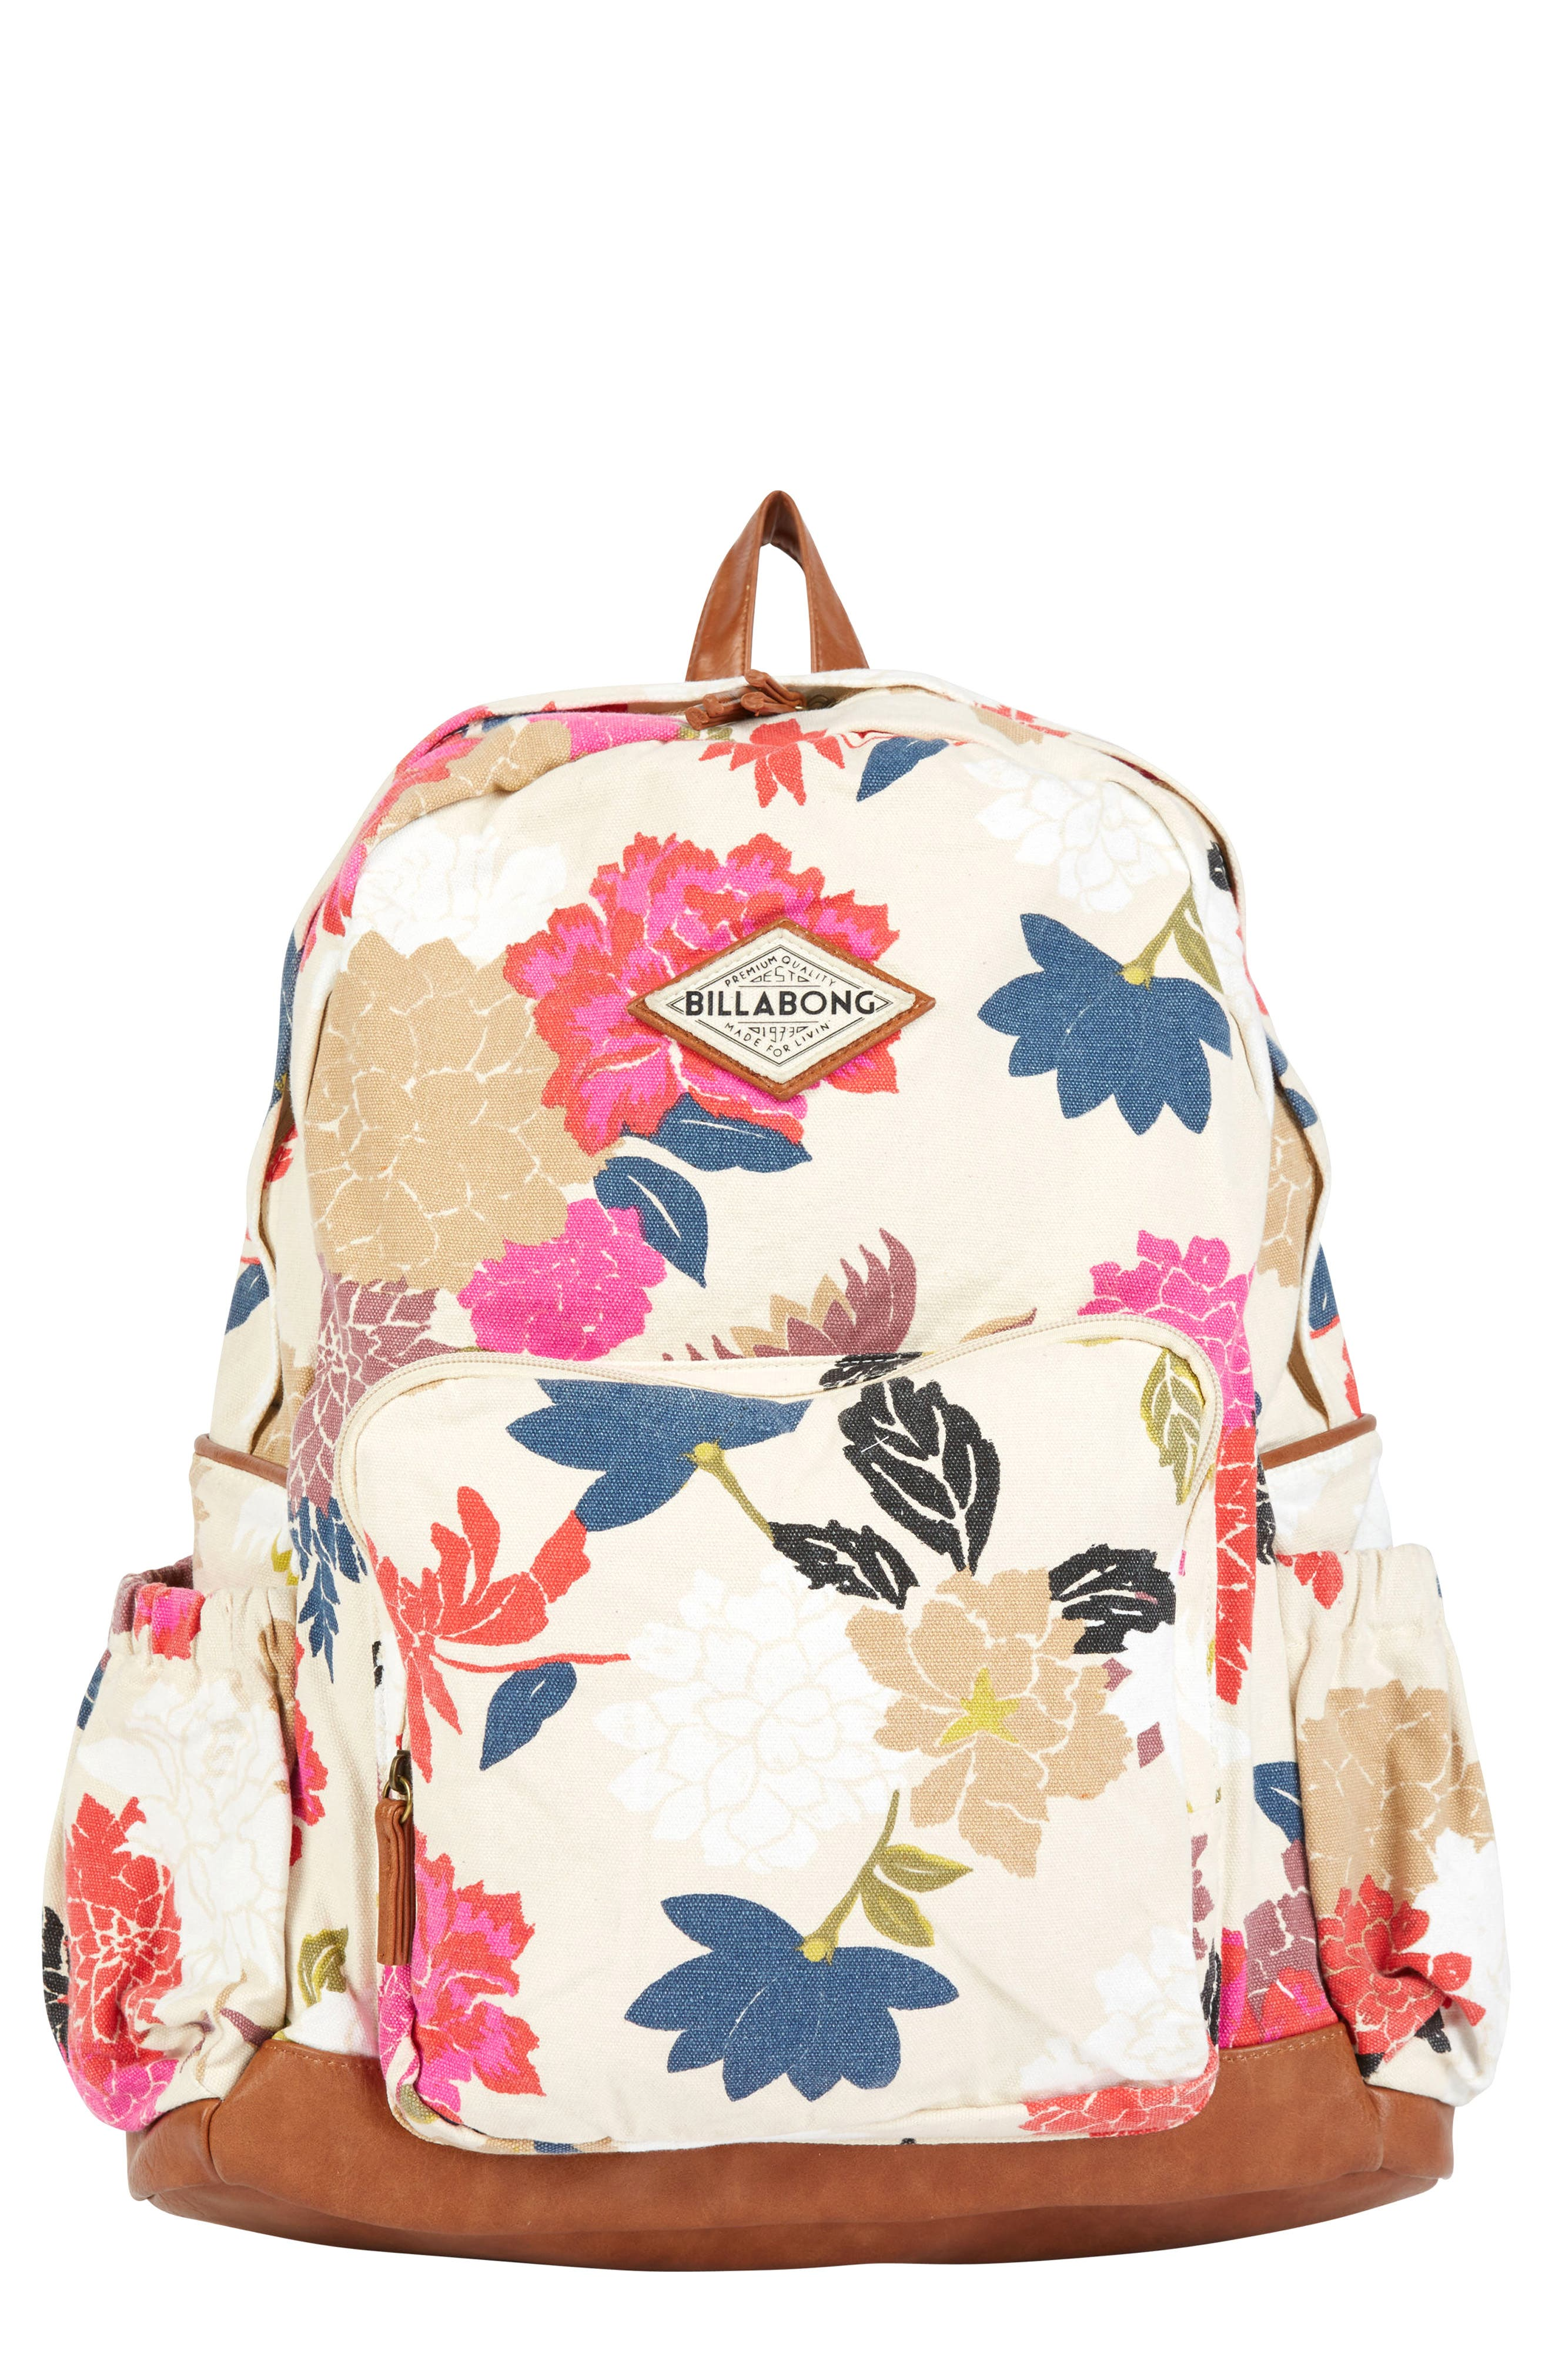 Home Abroad Floral Print Backpack,                             Main thumbnail 1, color,